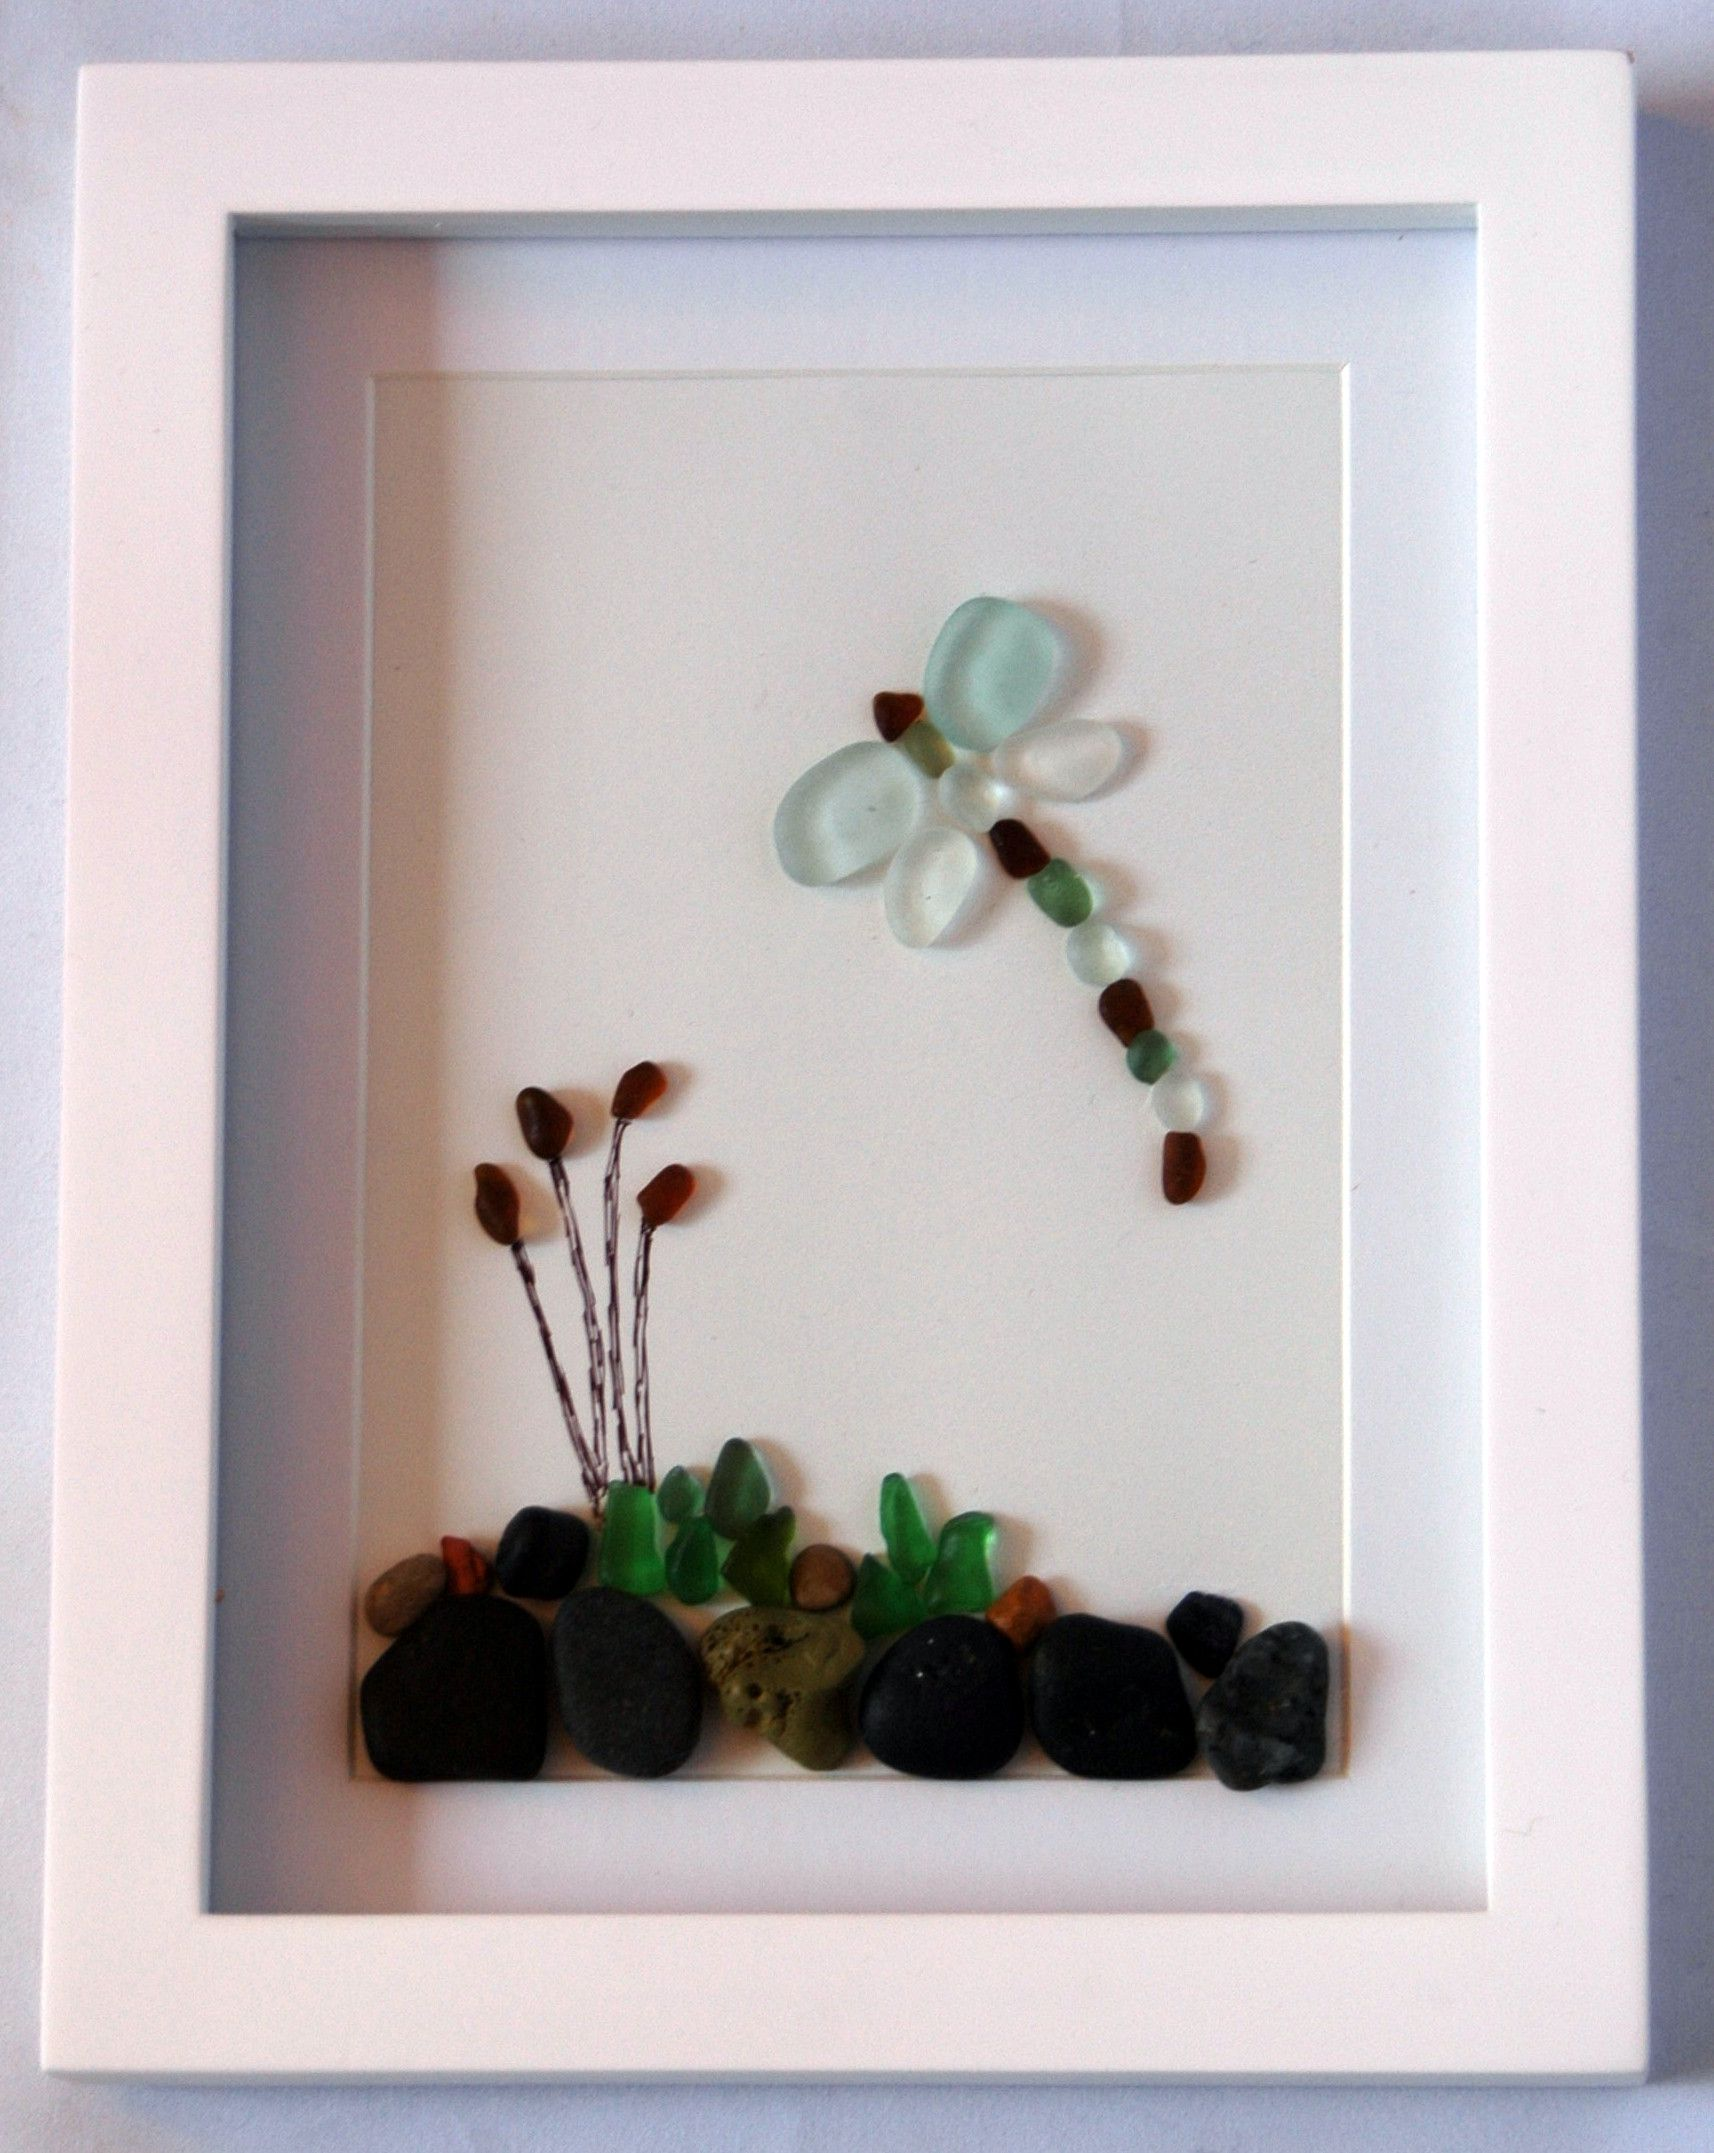 Seaham Sea Glass dragonfly by a river with Bullrushes. | Sea glass ...